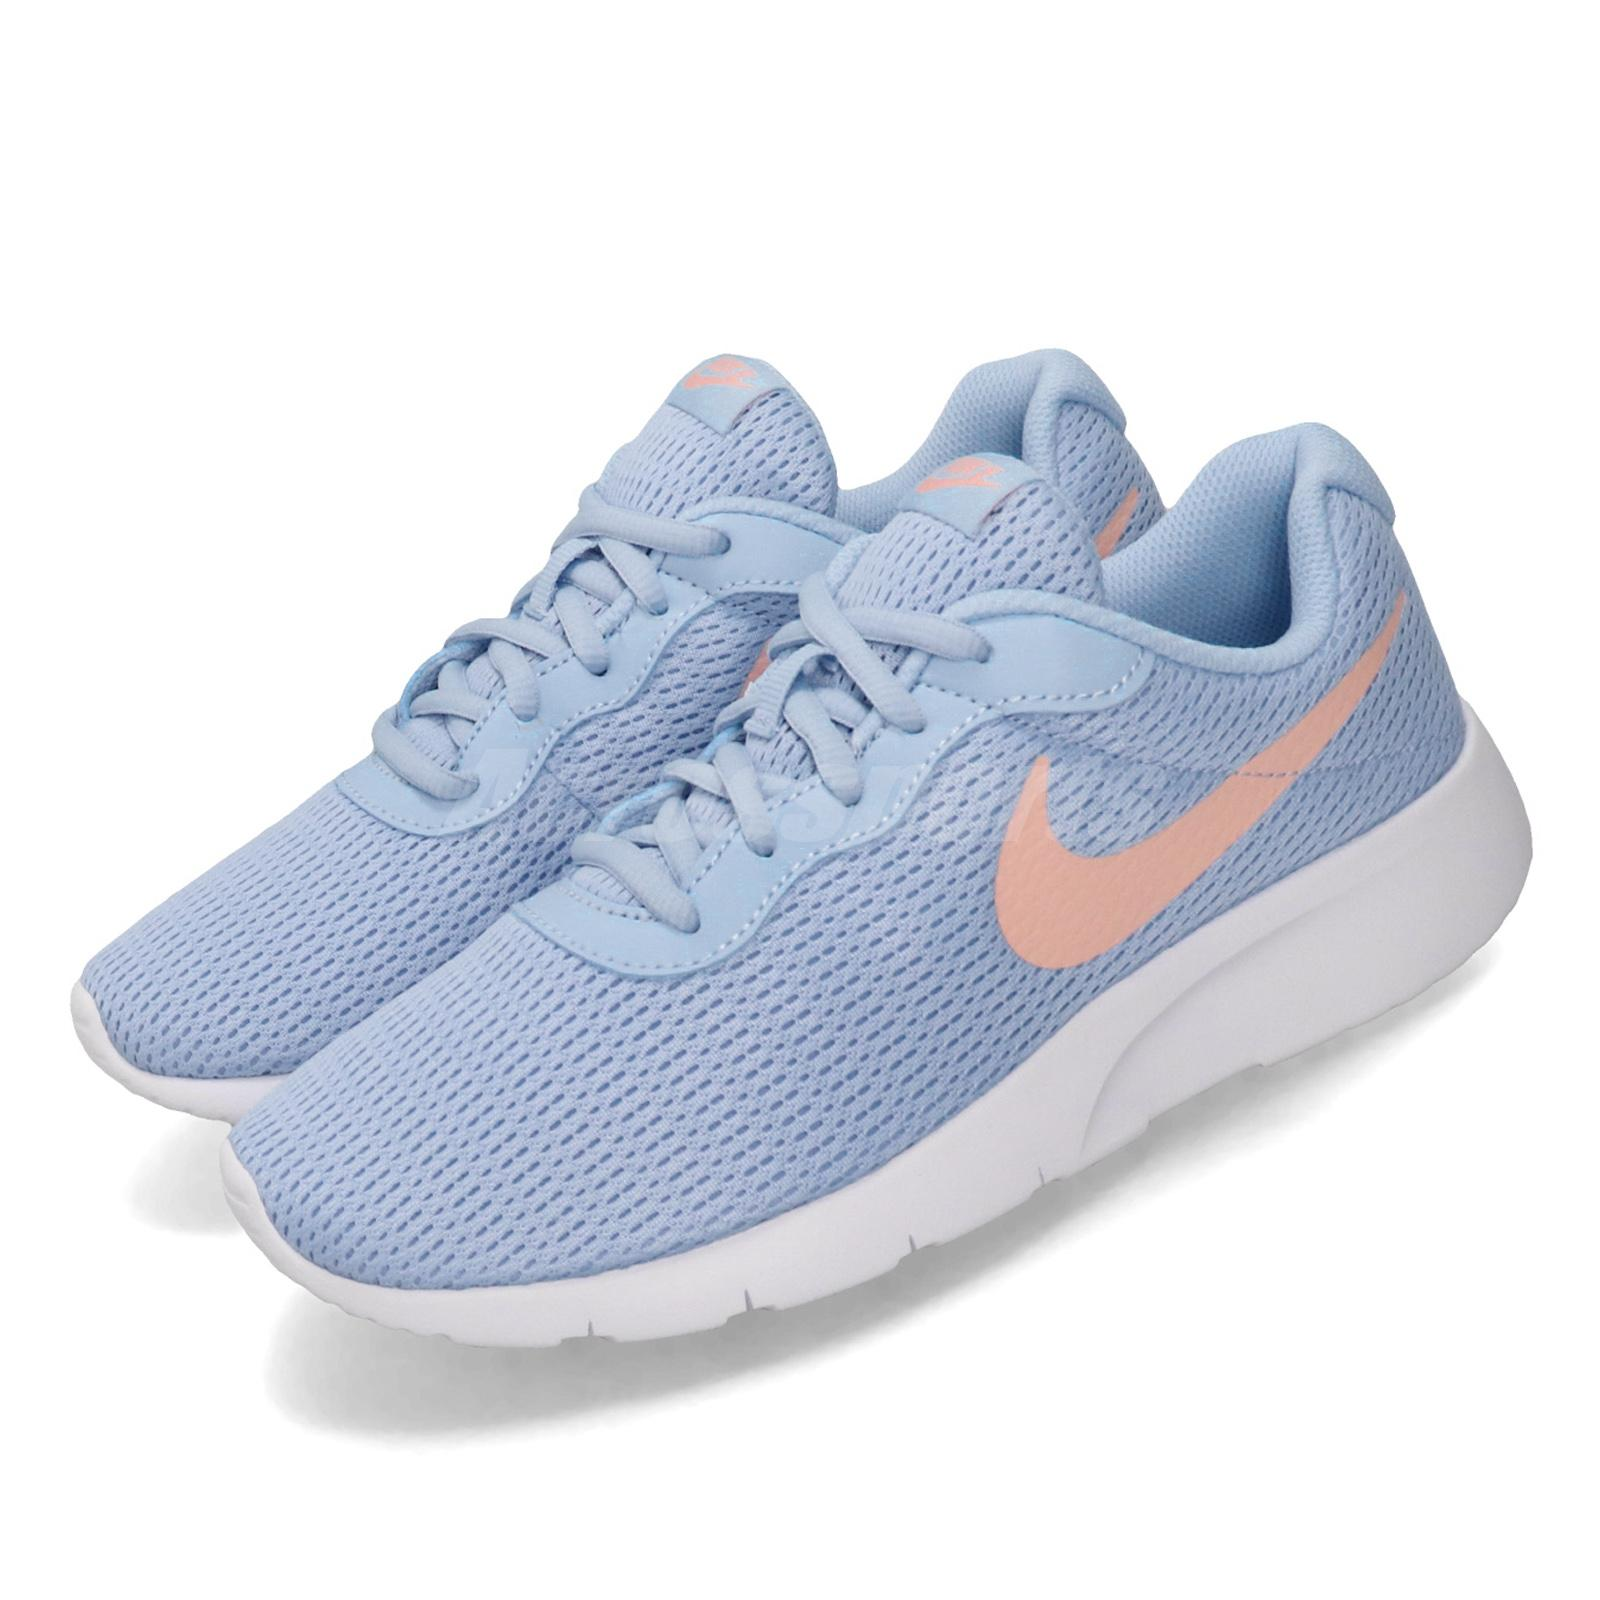 authorized site on sale various styles Details about Nike Tanjun GS Psychic Blue Bleached Coral Kid Women Running  Shoes 818384-406